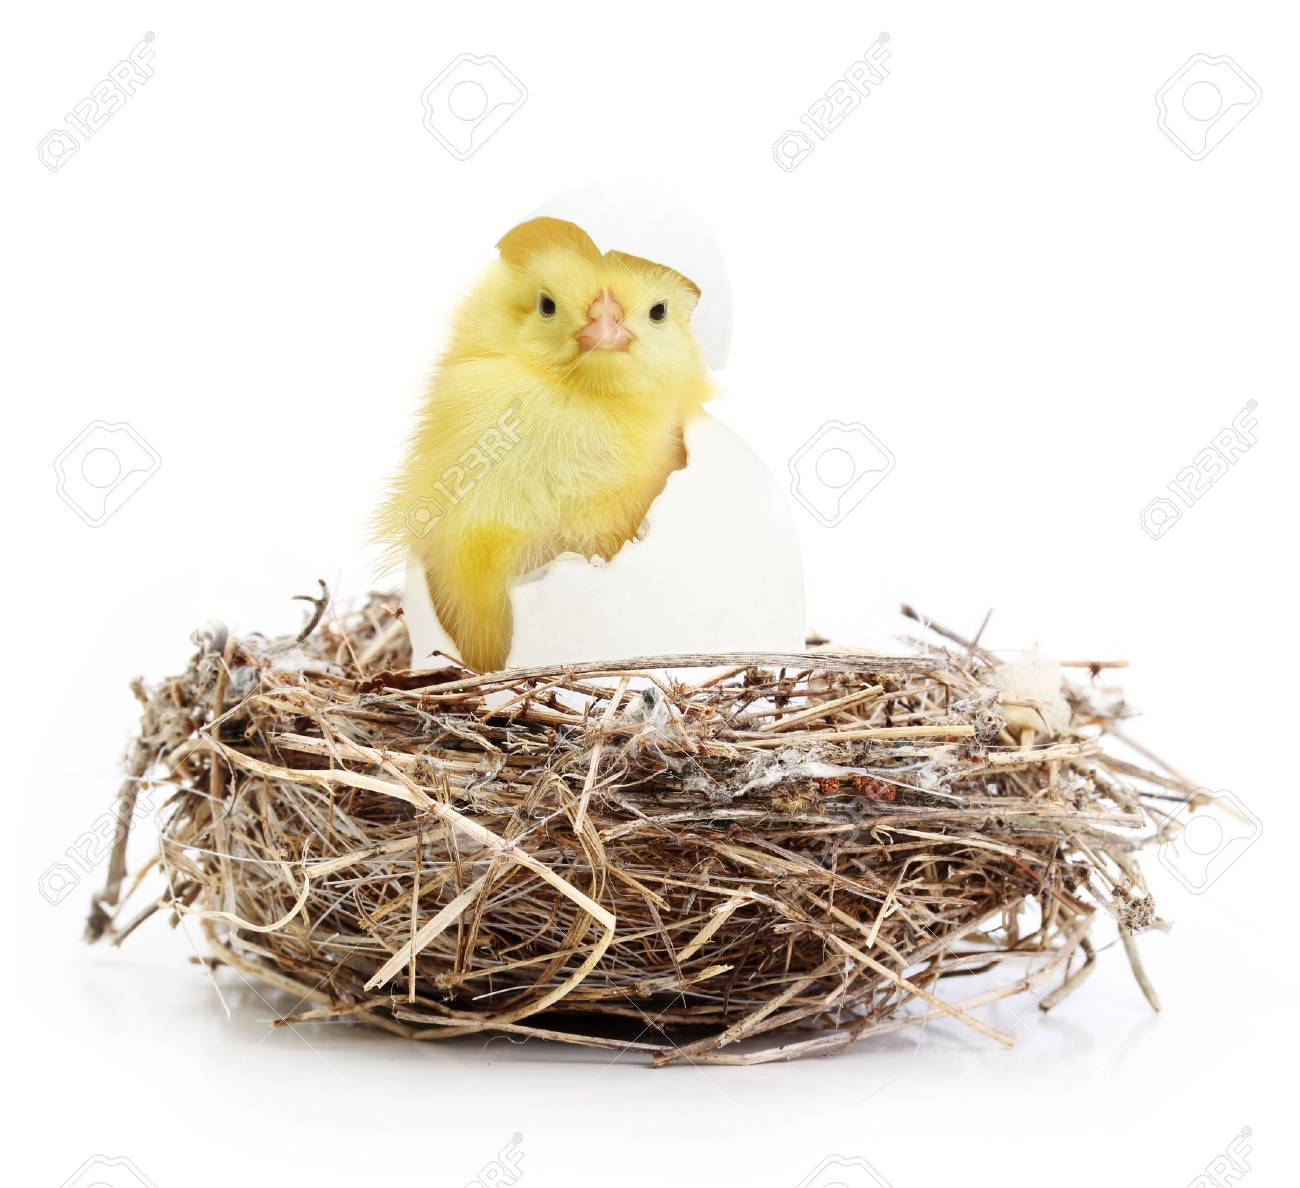 Cute little chicken coming out of a white egg in nest isolated on white background - 32040381